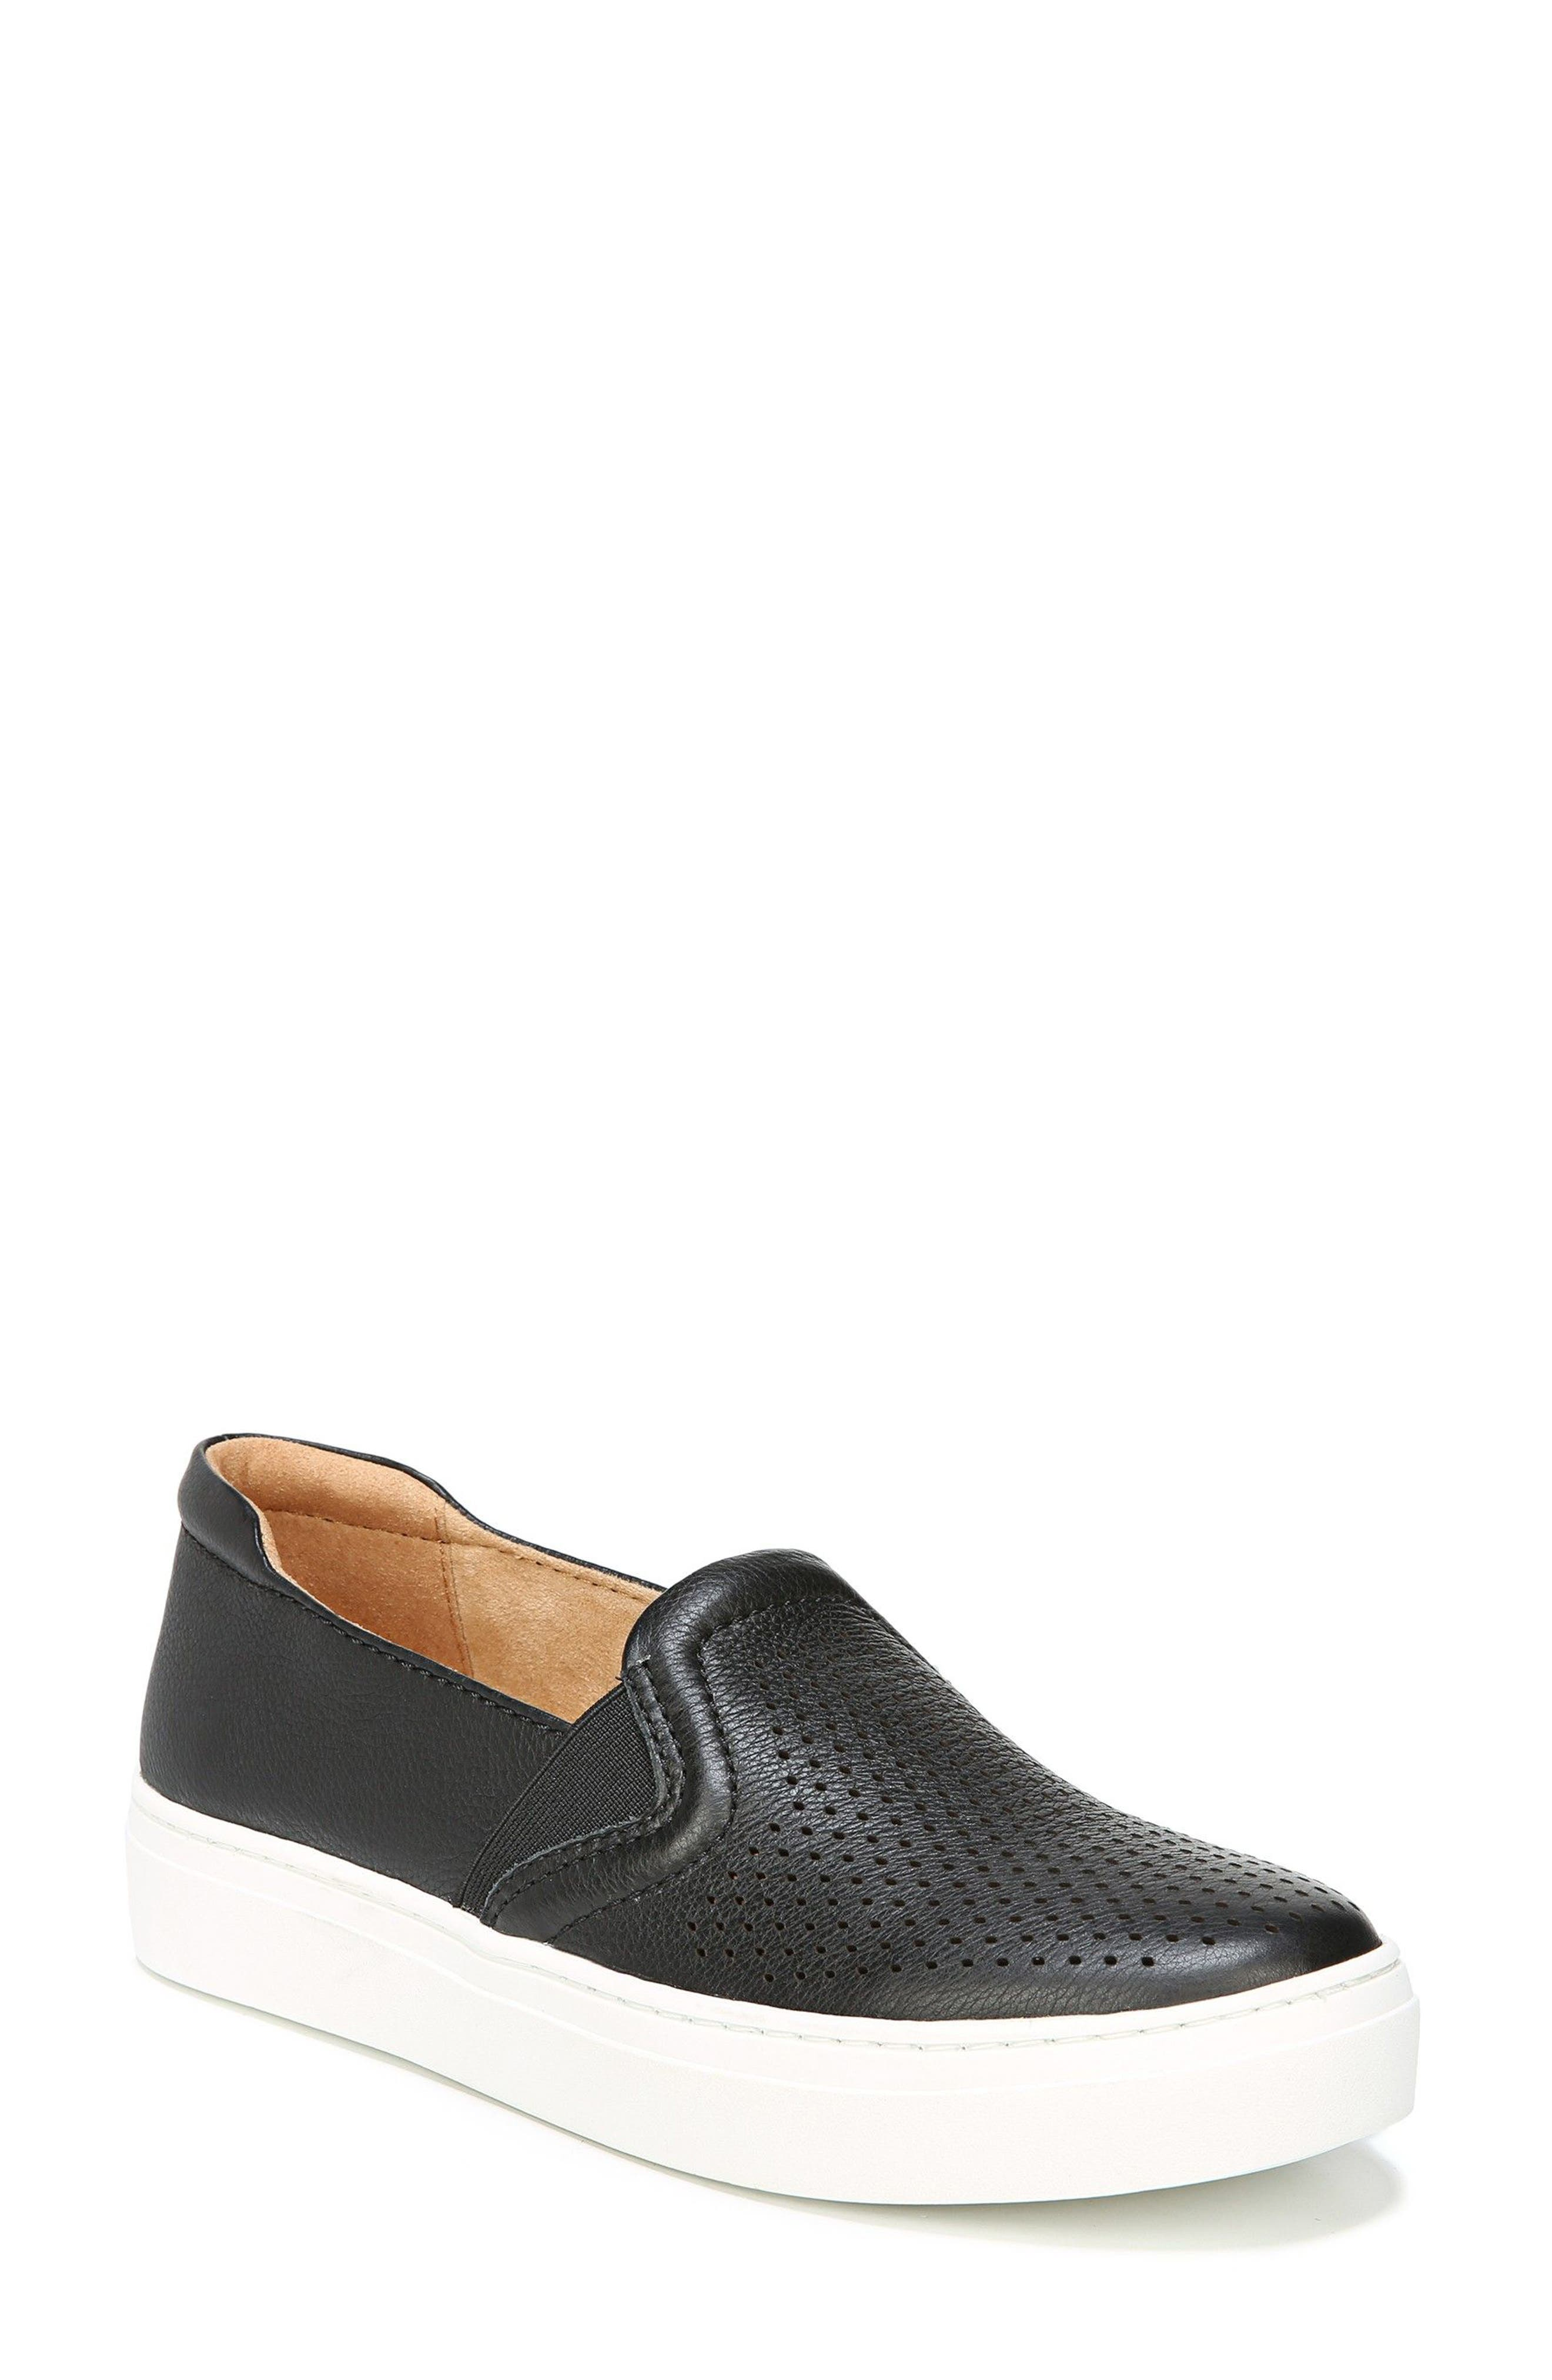 Carly Slip-On Sneaker,                             Main thumbnail 1, color,                             BLACK PEBBLED LEATHER